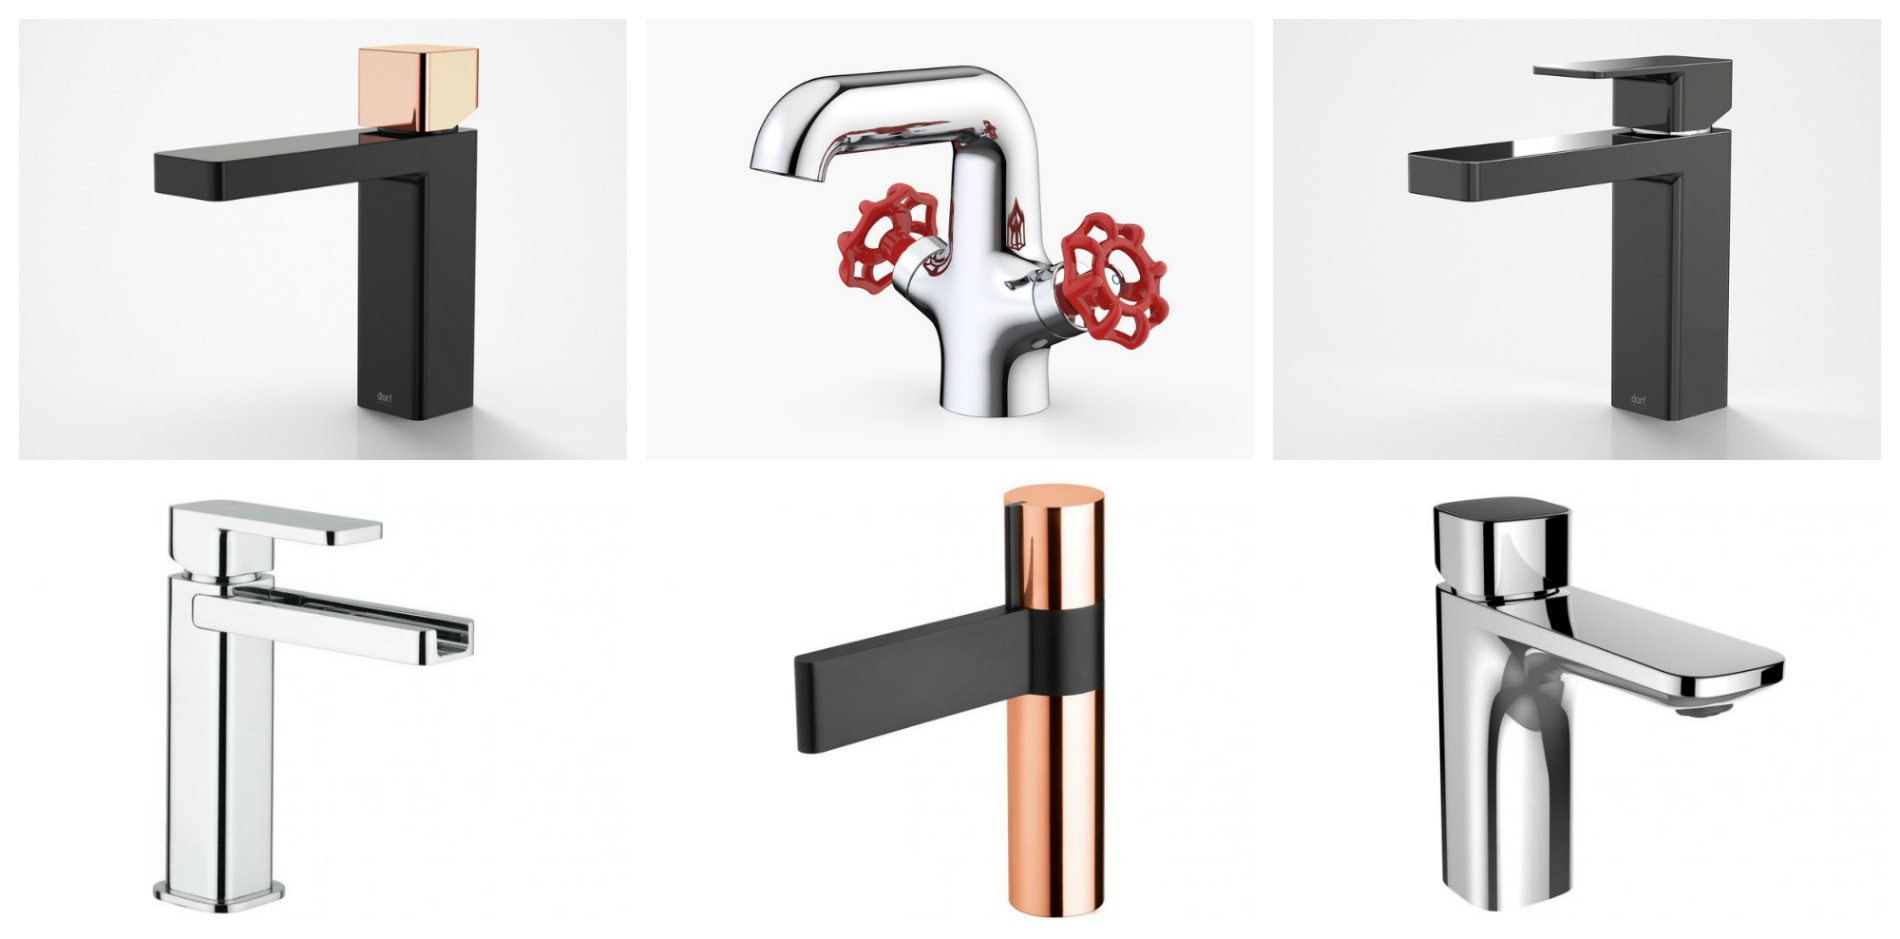 Traditional Taps Australia 10 Tapware Mixer Brands To Consider For Your Home The Plumbette